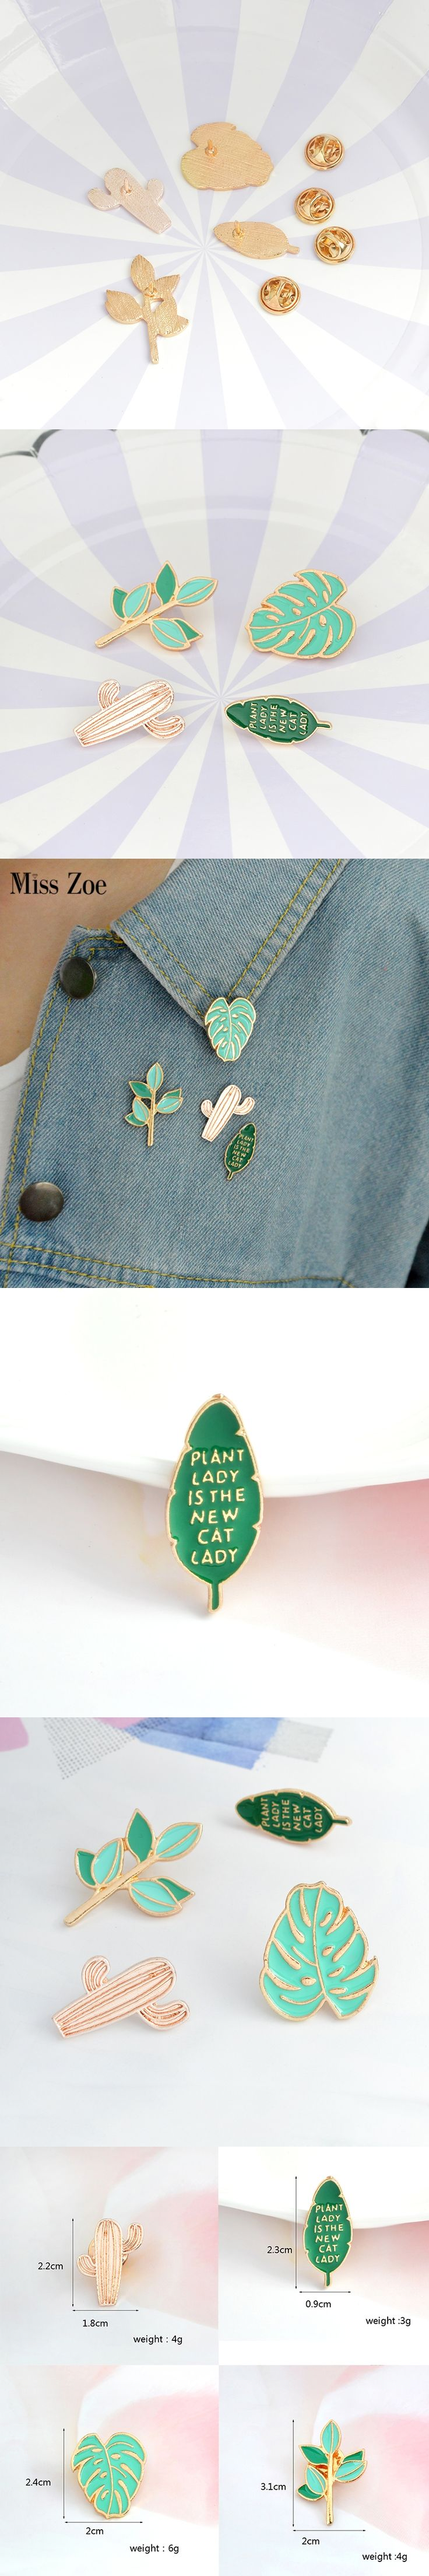 4pcs/set Cartoon Green Plant Little Tree Mexican Cactus Leaf Brooch Pins DIY Button Pin Denim Jacket Pin Badge Gift Jewelry